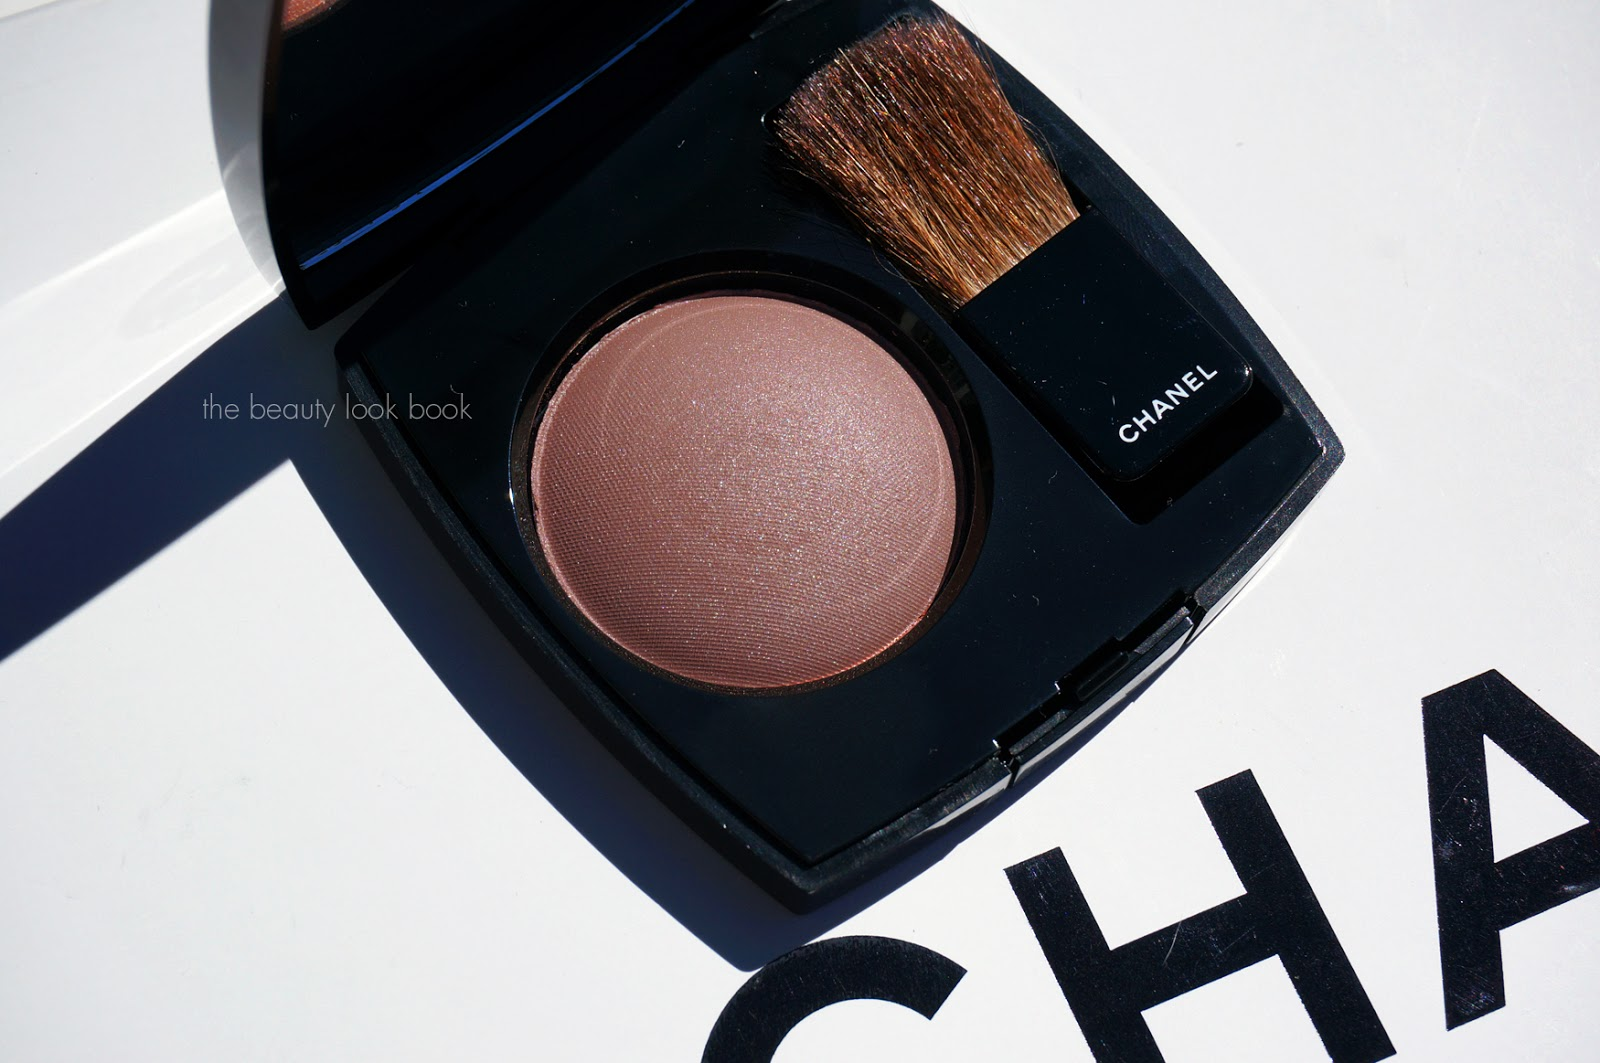 Accent Review Blush Powder Chanel